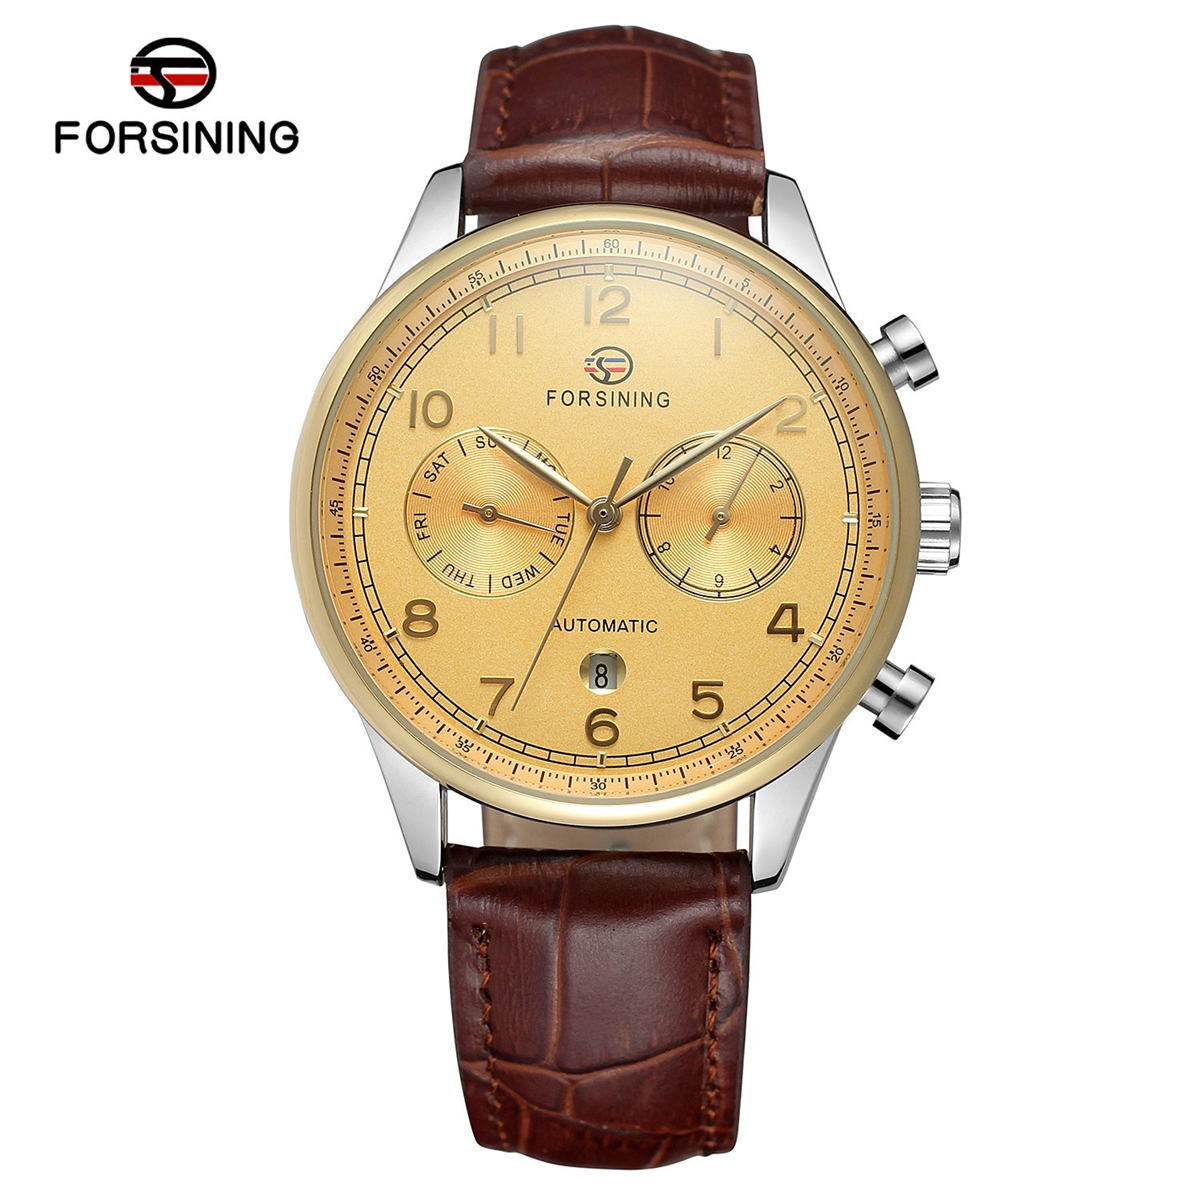 Forsining Automatic Mechanical Watches Men watch Relogio Automatico Masculino Waterproof Sport Business Wristwatch Male Clock forsining date display automatic mechanical watch men business leather band watches modern gift dress classic analog clock box